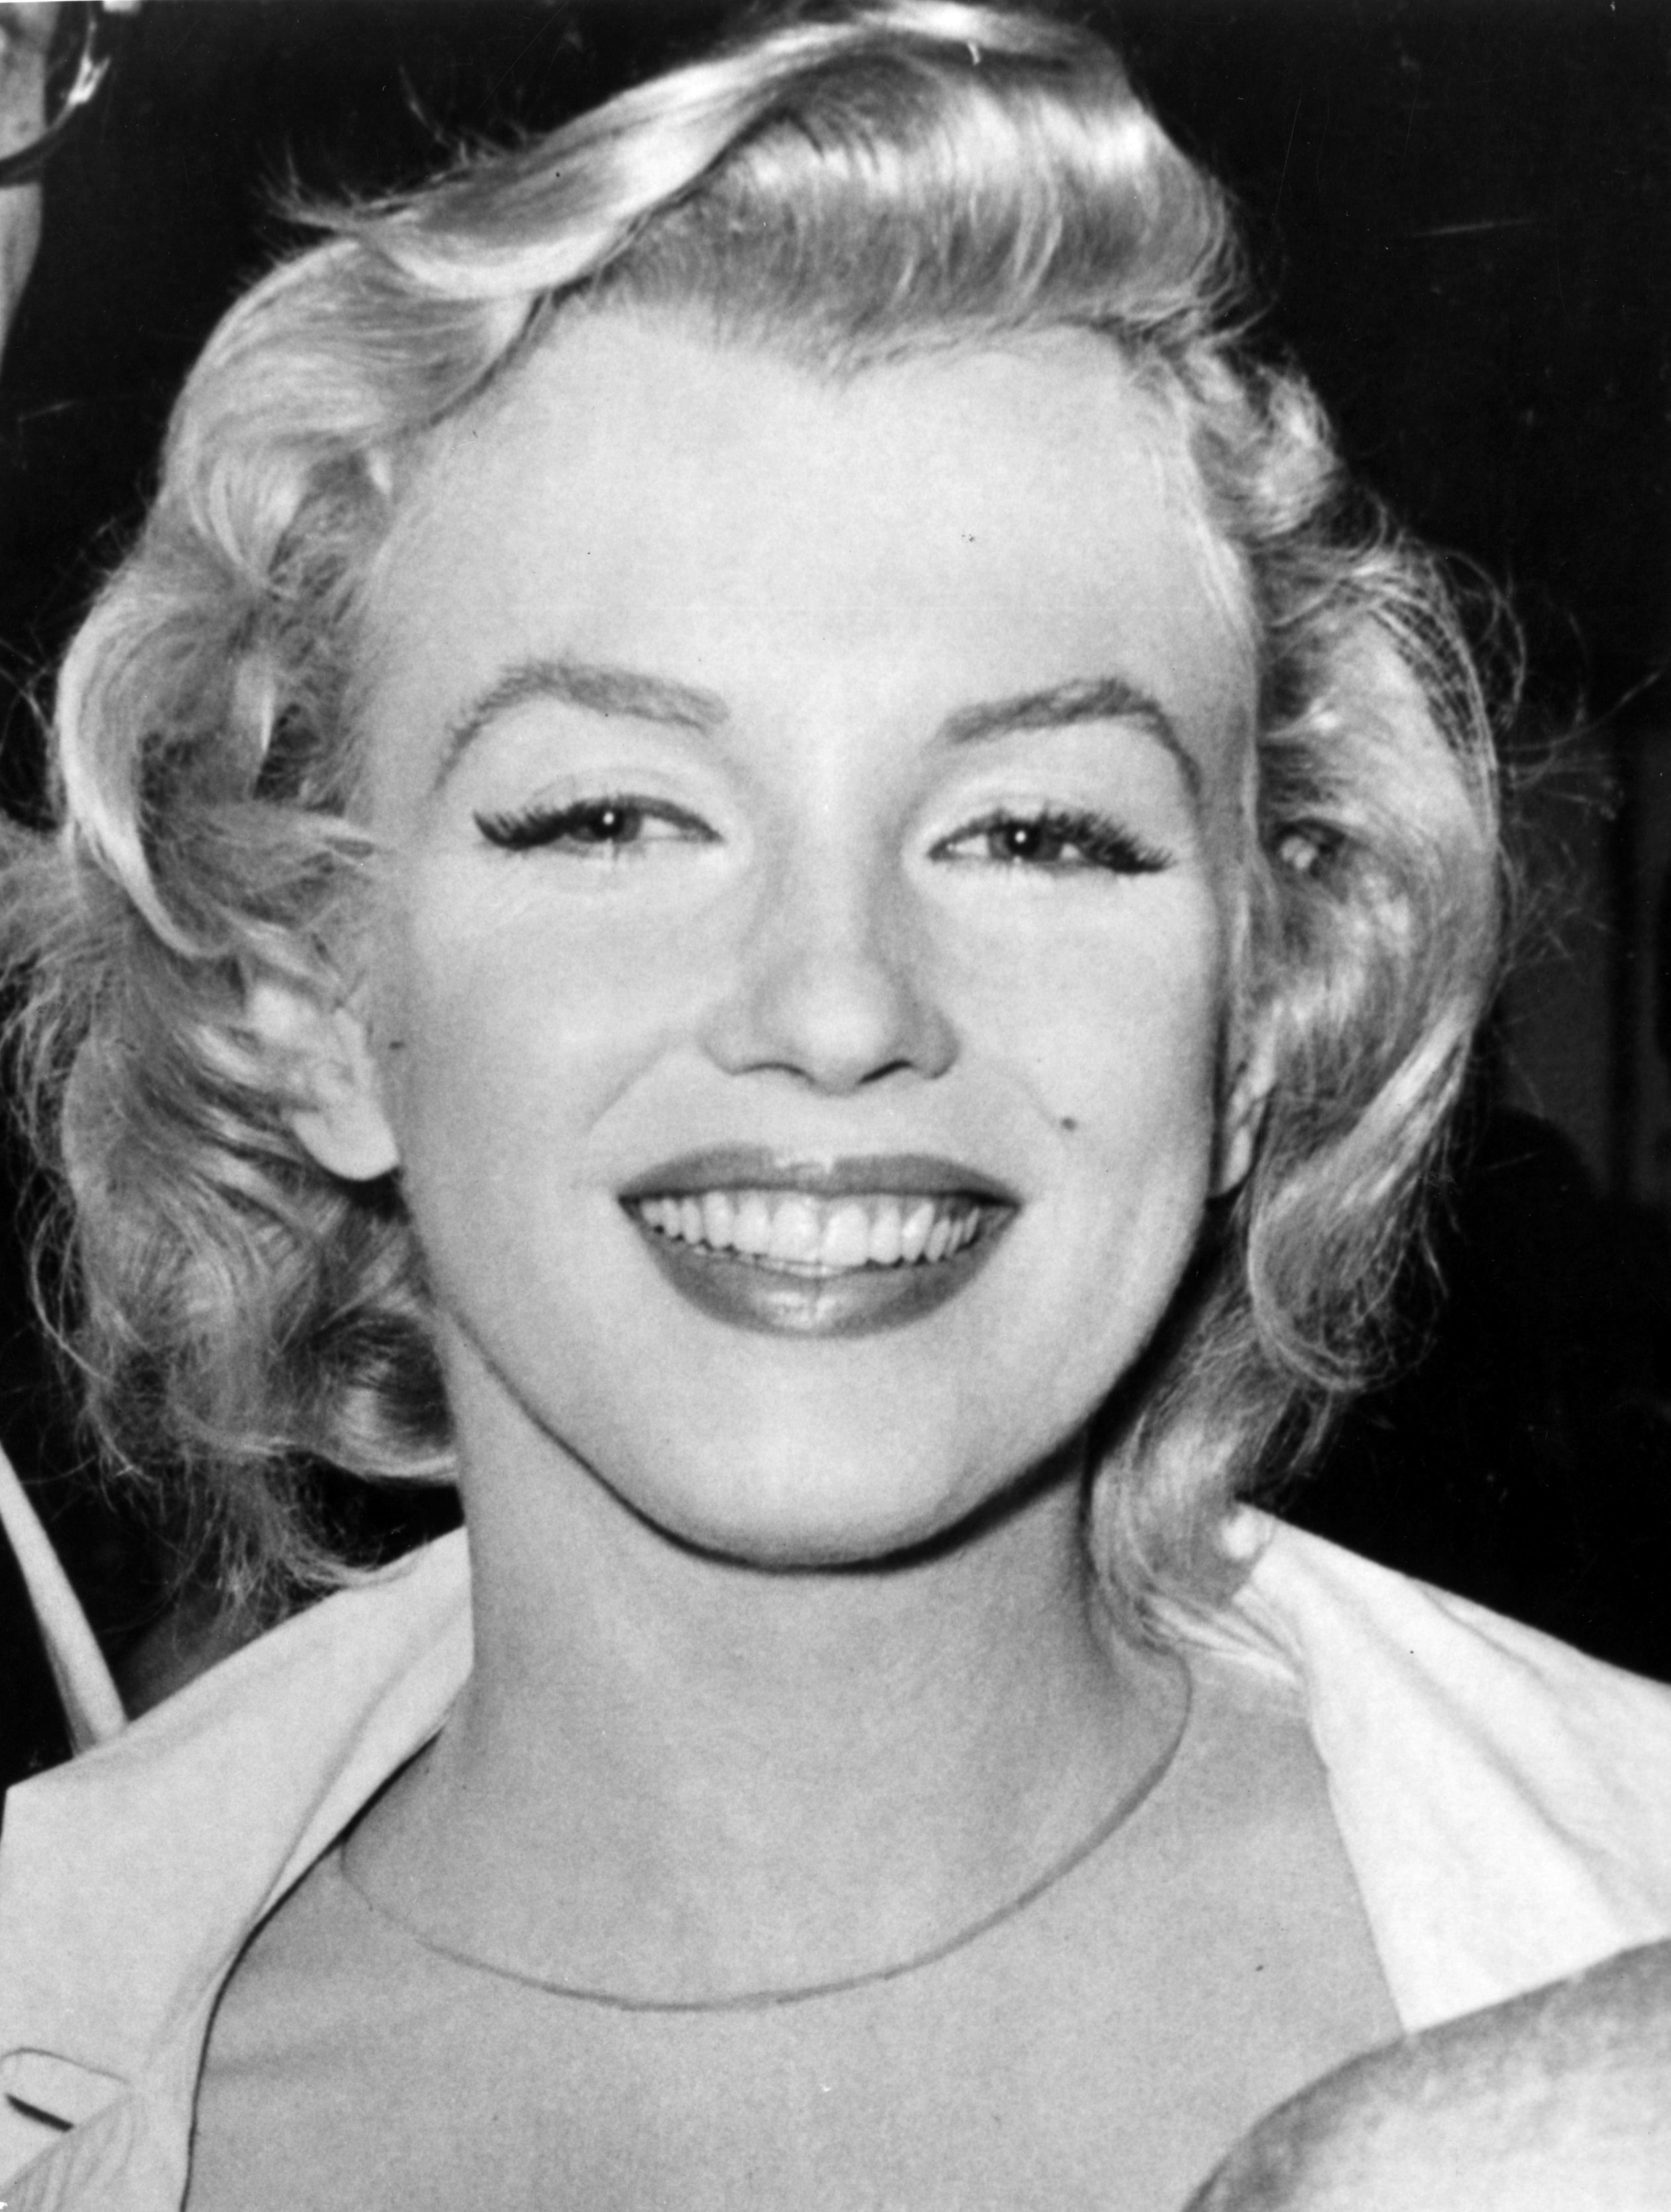 14th July 1956:  American film star Marilyn Monroe (Norma Jean Mortenson or Norma Jean Baker, 1926 - 1962).  (Photo by Evening Standard/Getty Images)